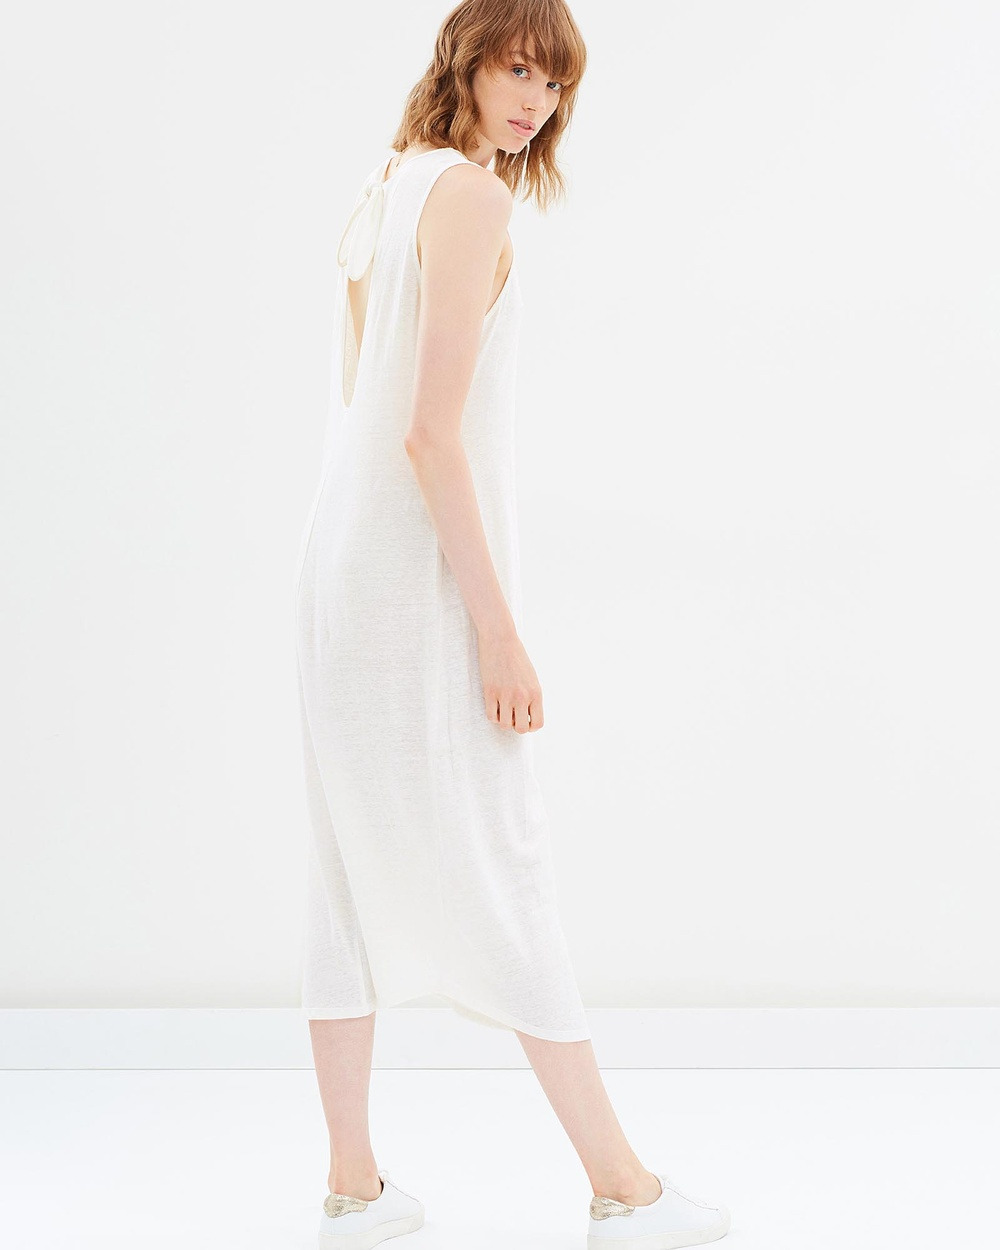 Third Form Embrace Tie Tank Dress Dresses White Embrace Tie Tank Dress